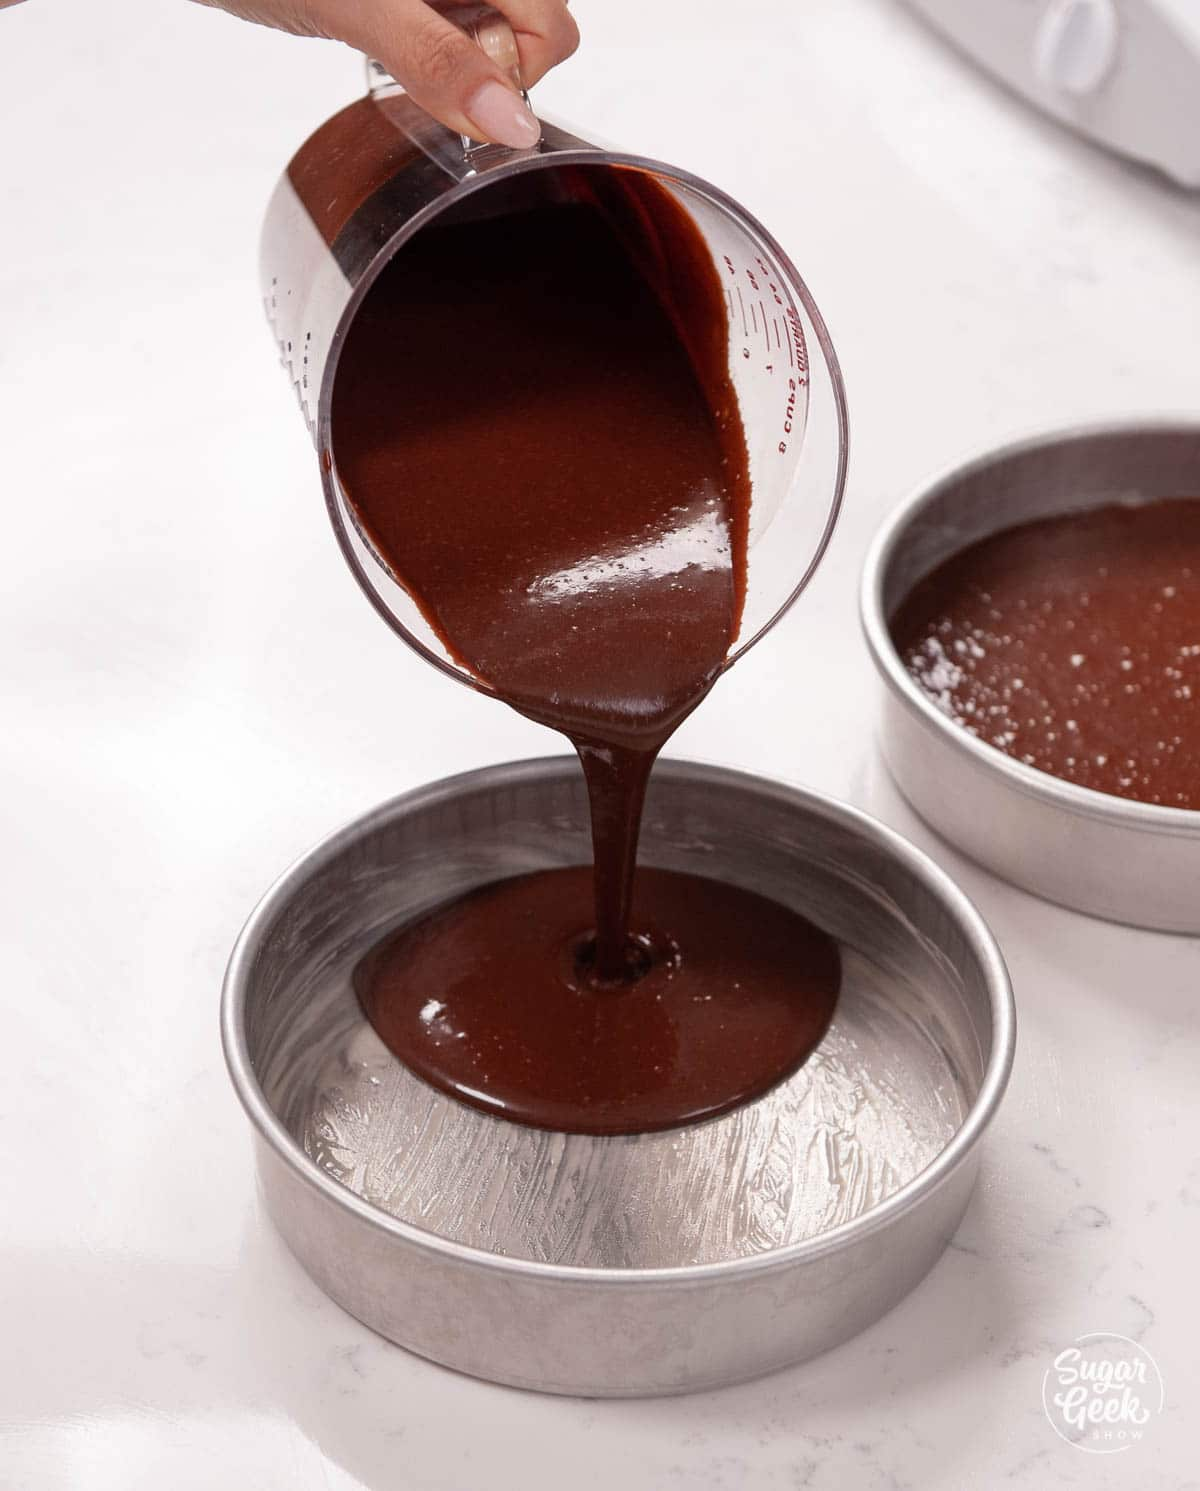 pouring chocolate batter into cake pans